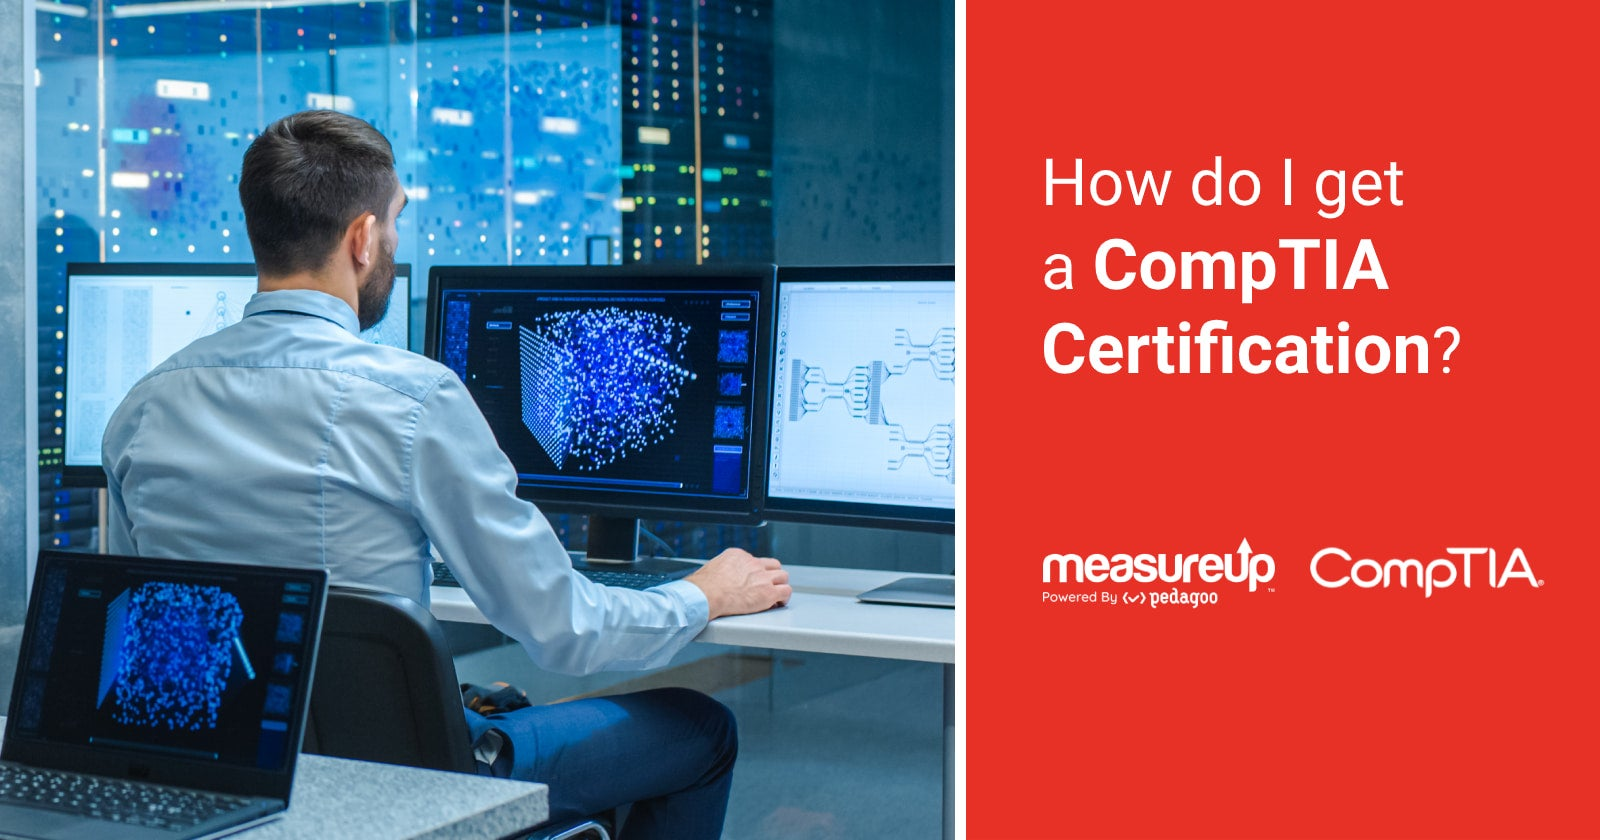 How Do I Get a CompTIA Certification?